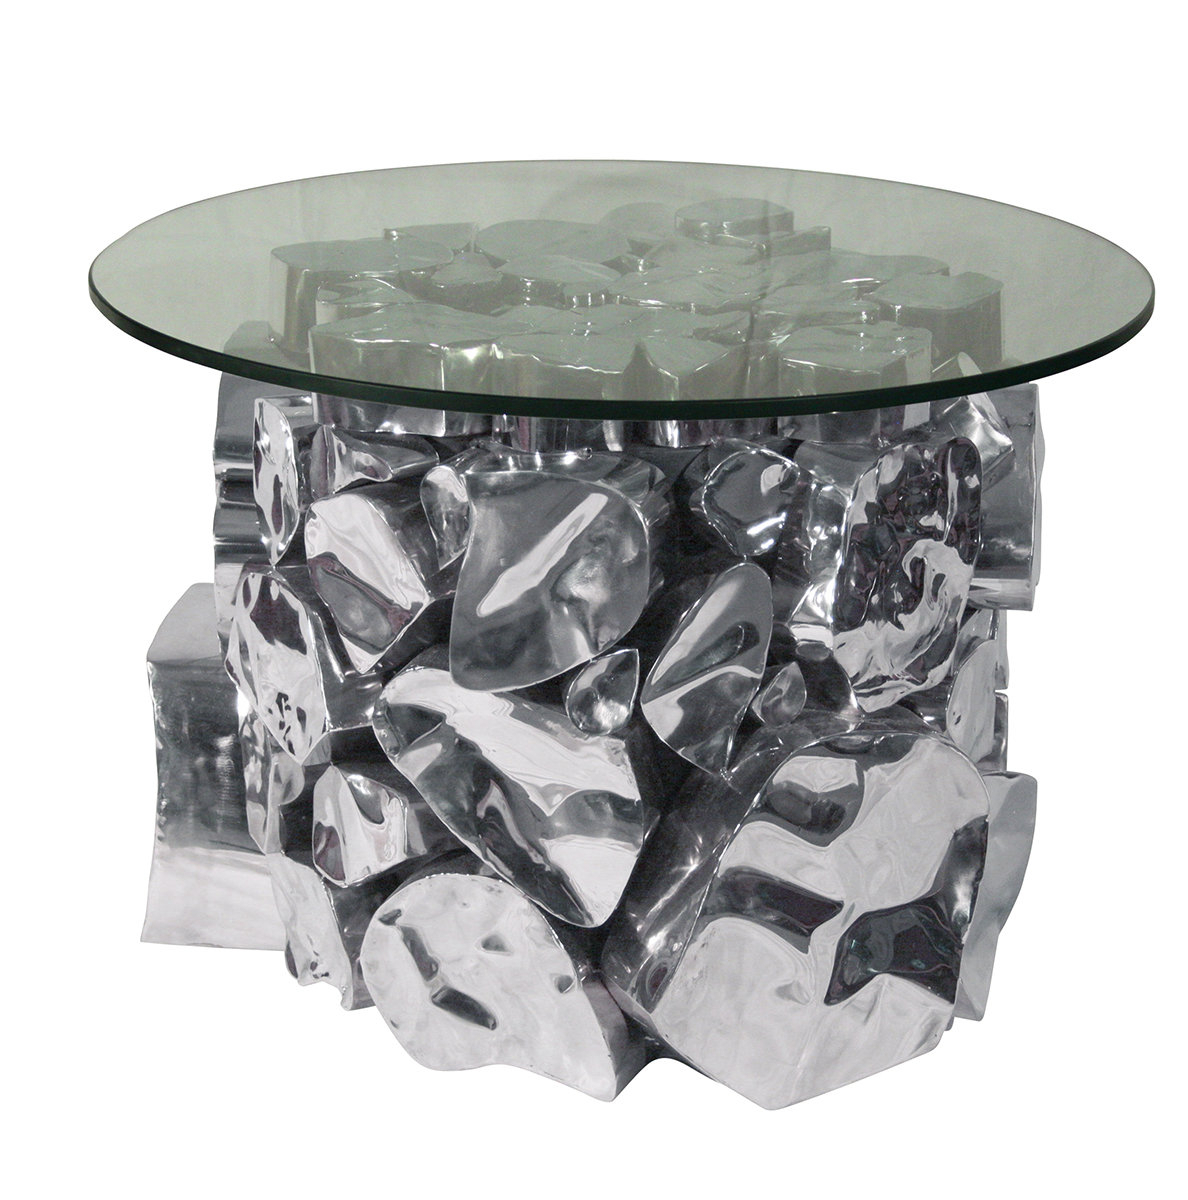 Ibolili Agate End Table | Wayfair in Mix Agate Metal Frame Console Tables (Image 15 of 30)